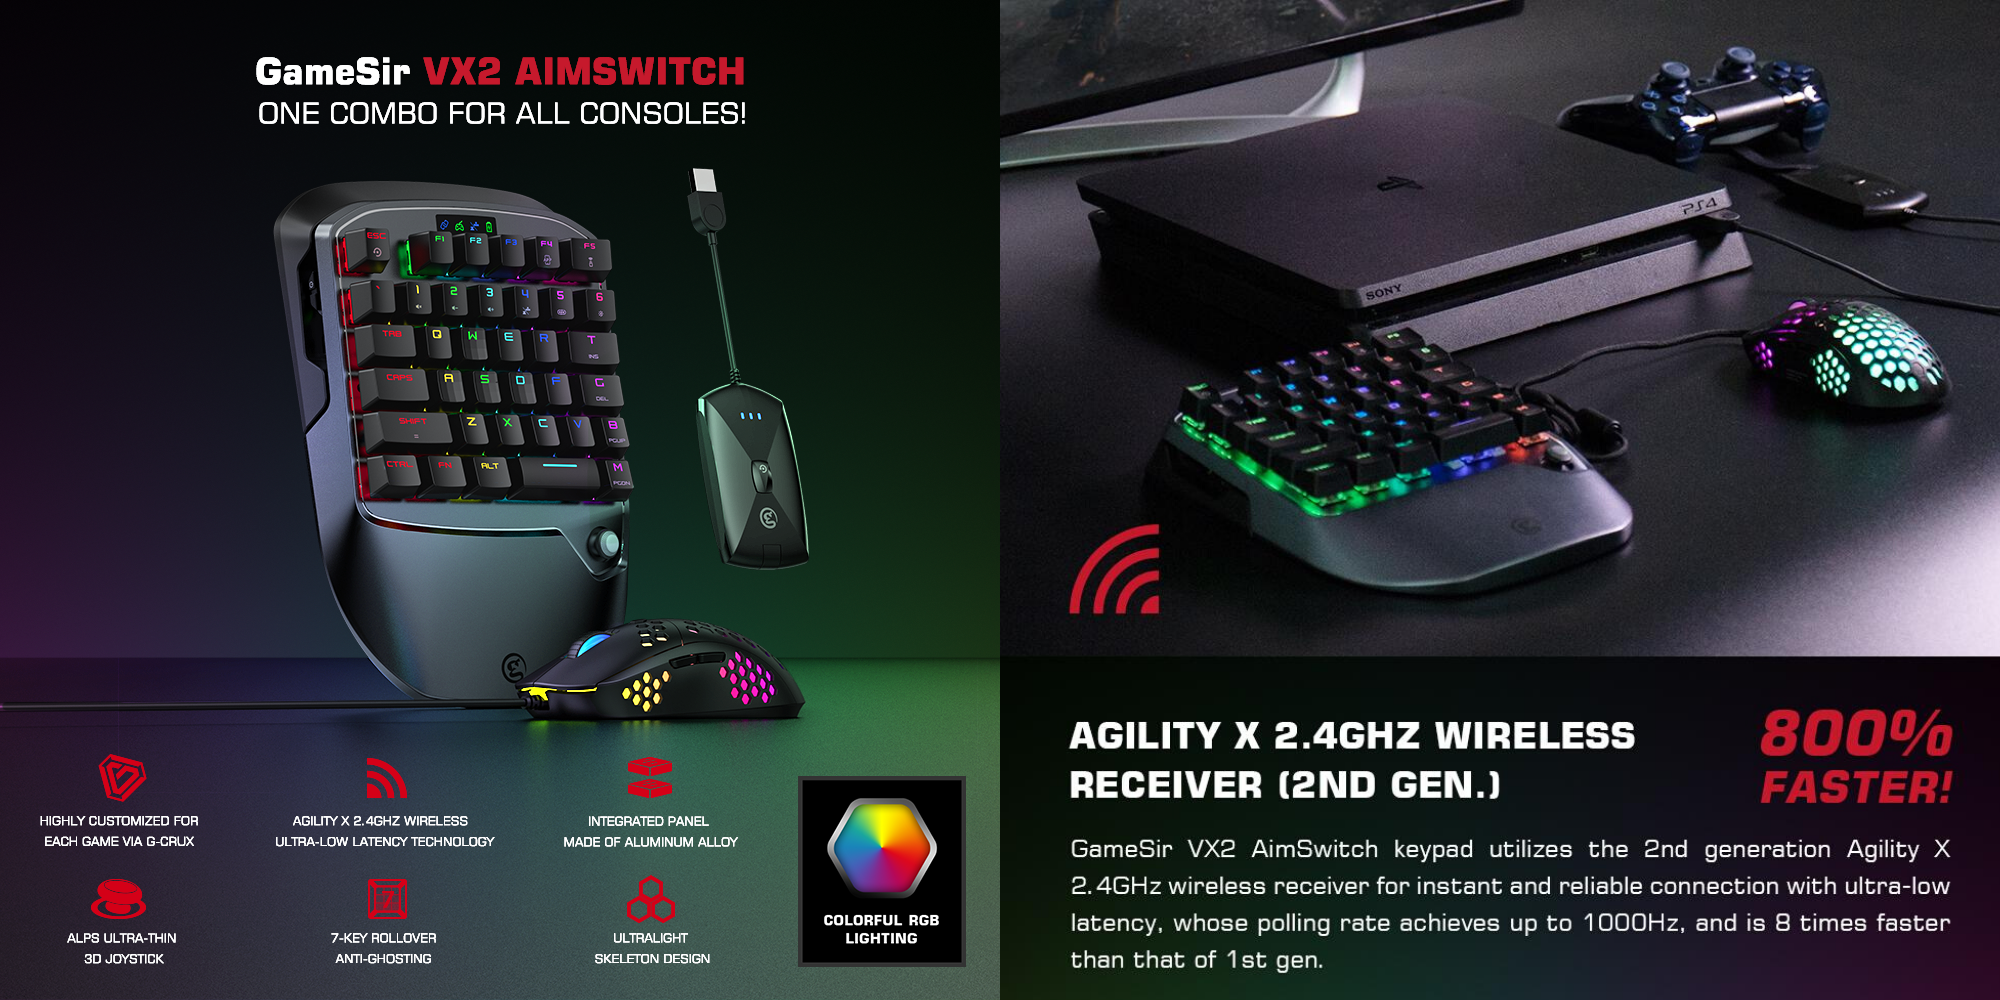 Gamesir Vx2 Aimswitch Review Mechanical Gaming Keyboard Mouse For Your Ps4 Nintendo Switch Xbox One Mighty Gadget Blog Uk Technology News And Reviews